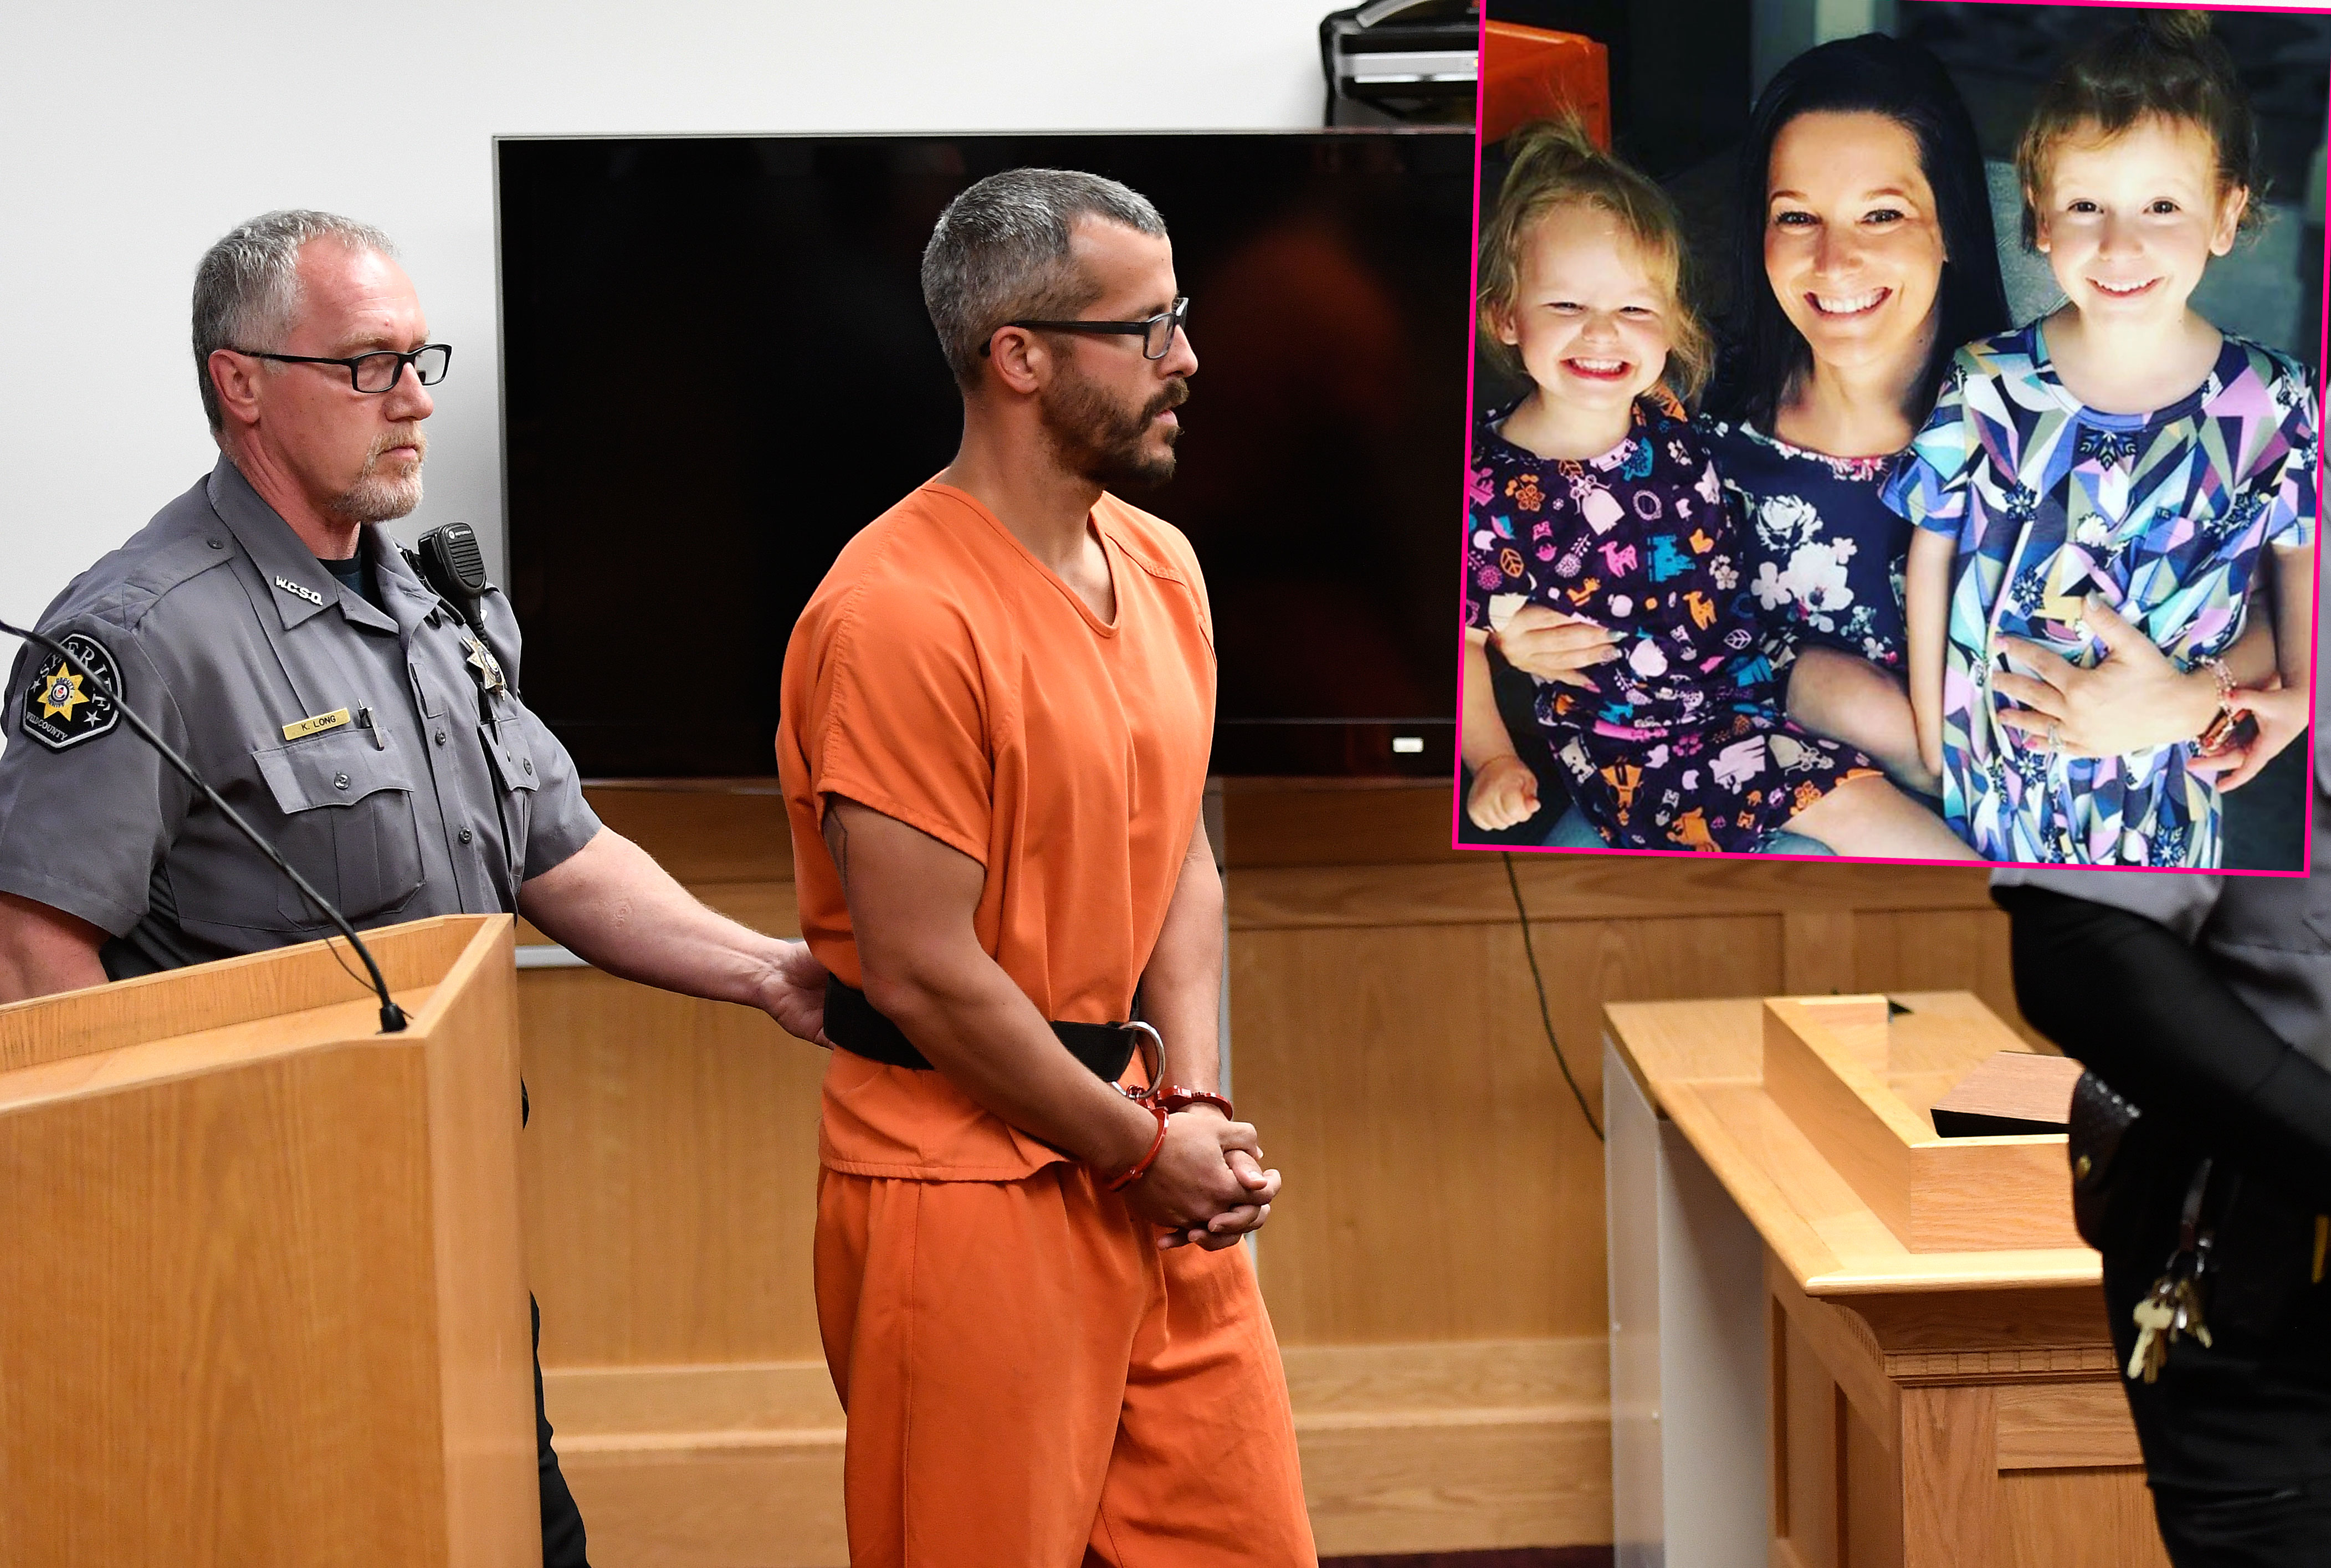 Chris Watts Case: Motive, Autopsy Results to Be Announced